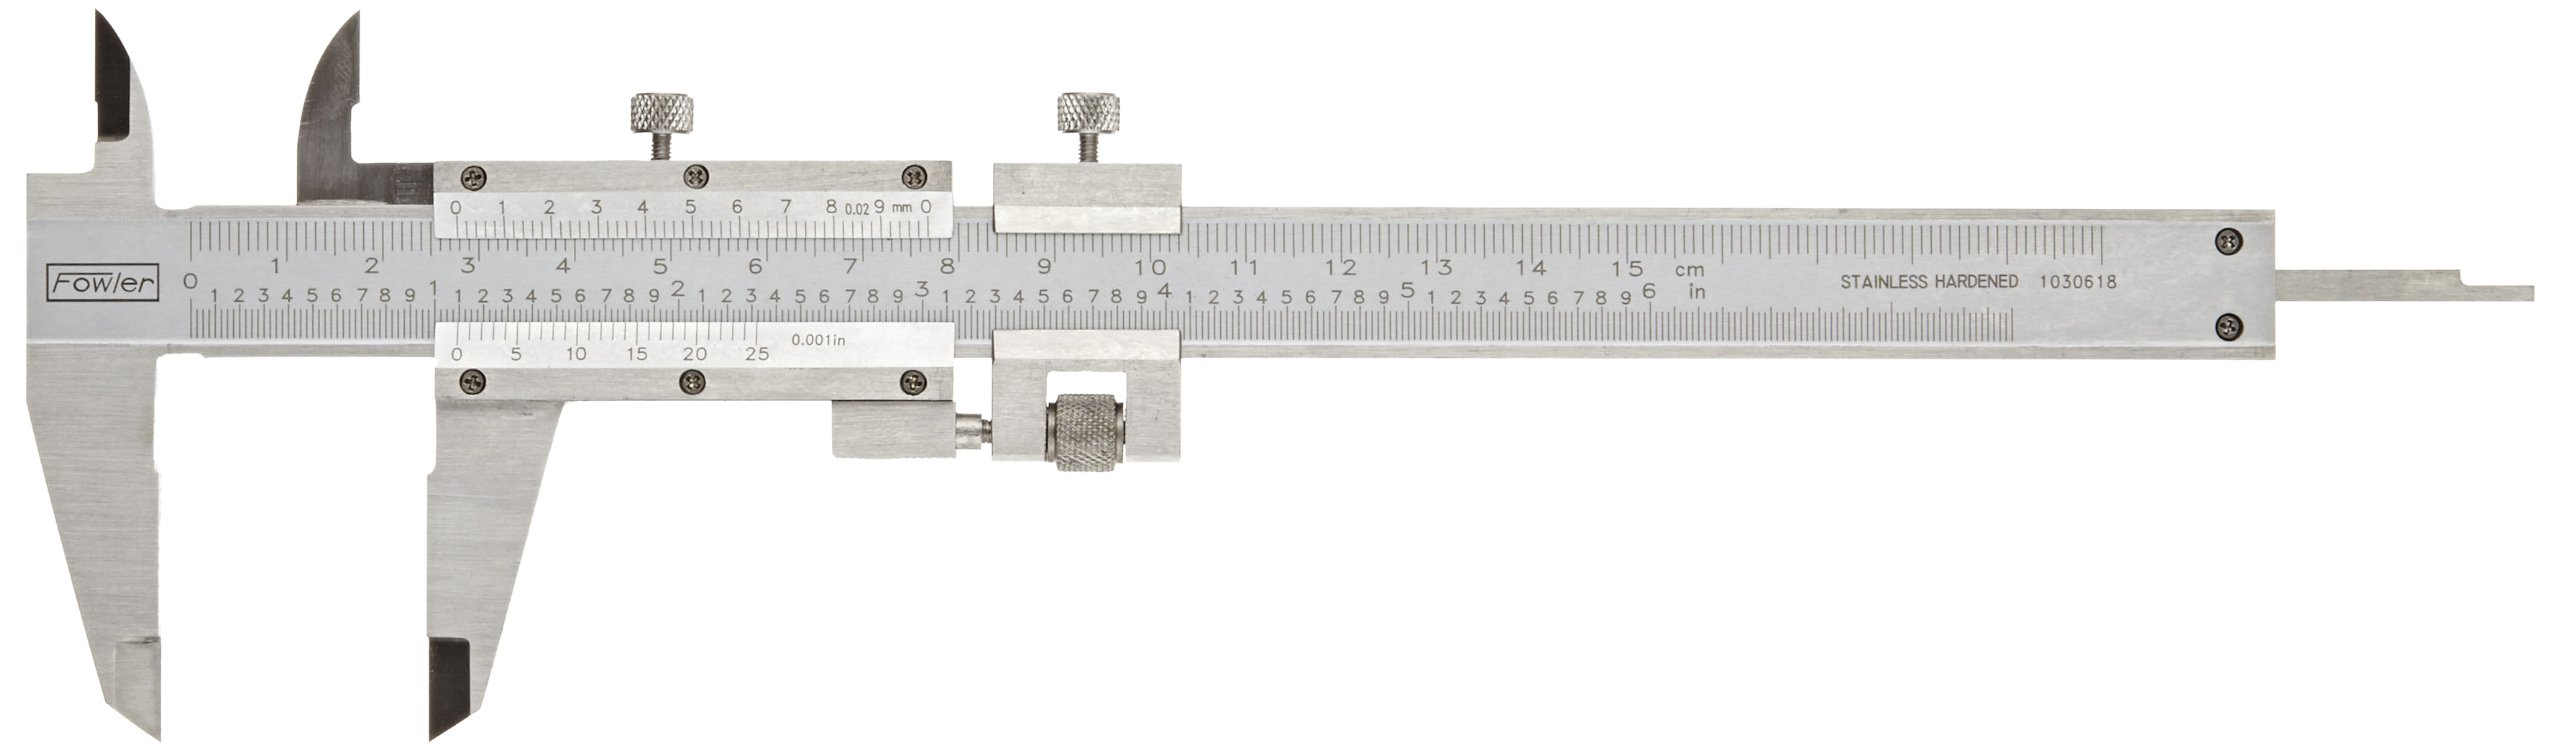 Fowler Full Warranty Vernier Caliper with Satin Chrome Finish and Stainless Steel Fine Adjustment, 52-058-016-0, 0-6''/0-150mm Measuring Range, 0.001''/0.02mm Graduation